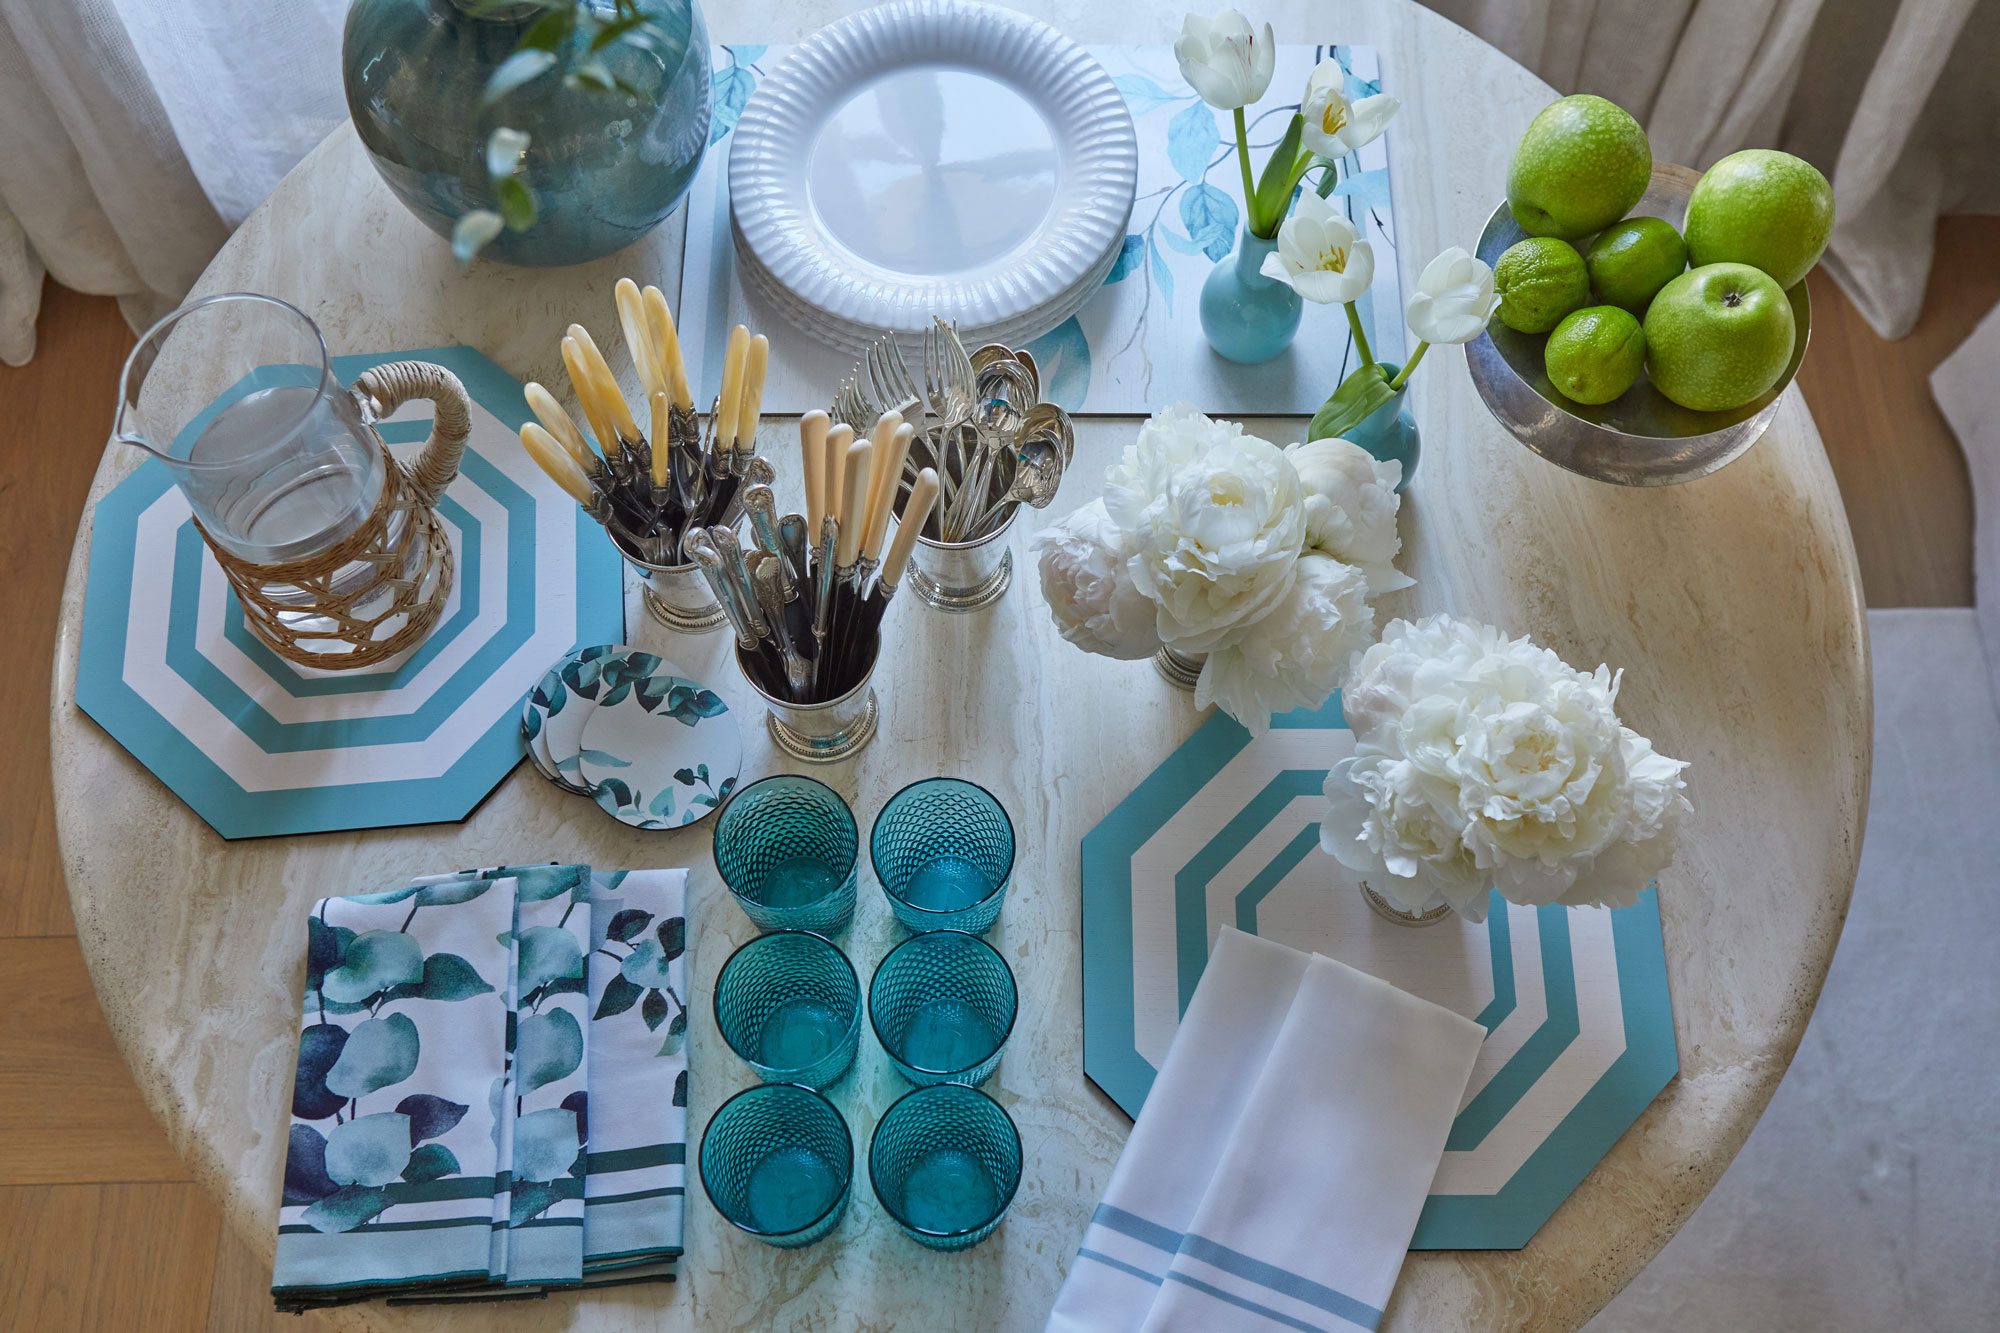 Dressing your table with style is possible at The Lino